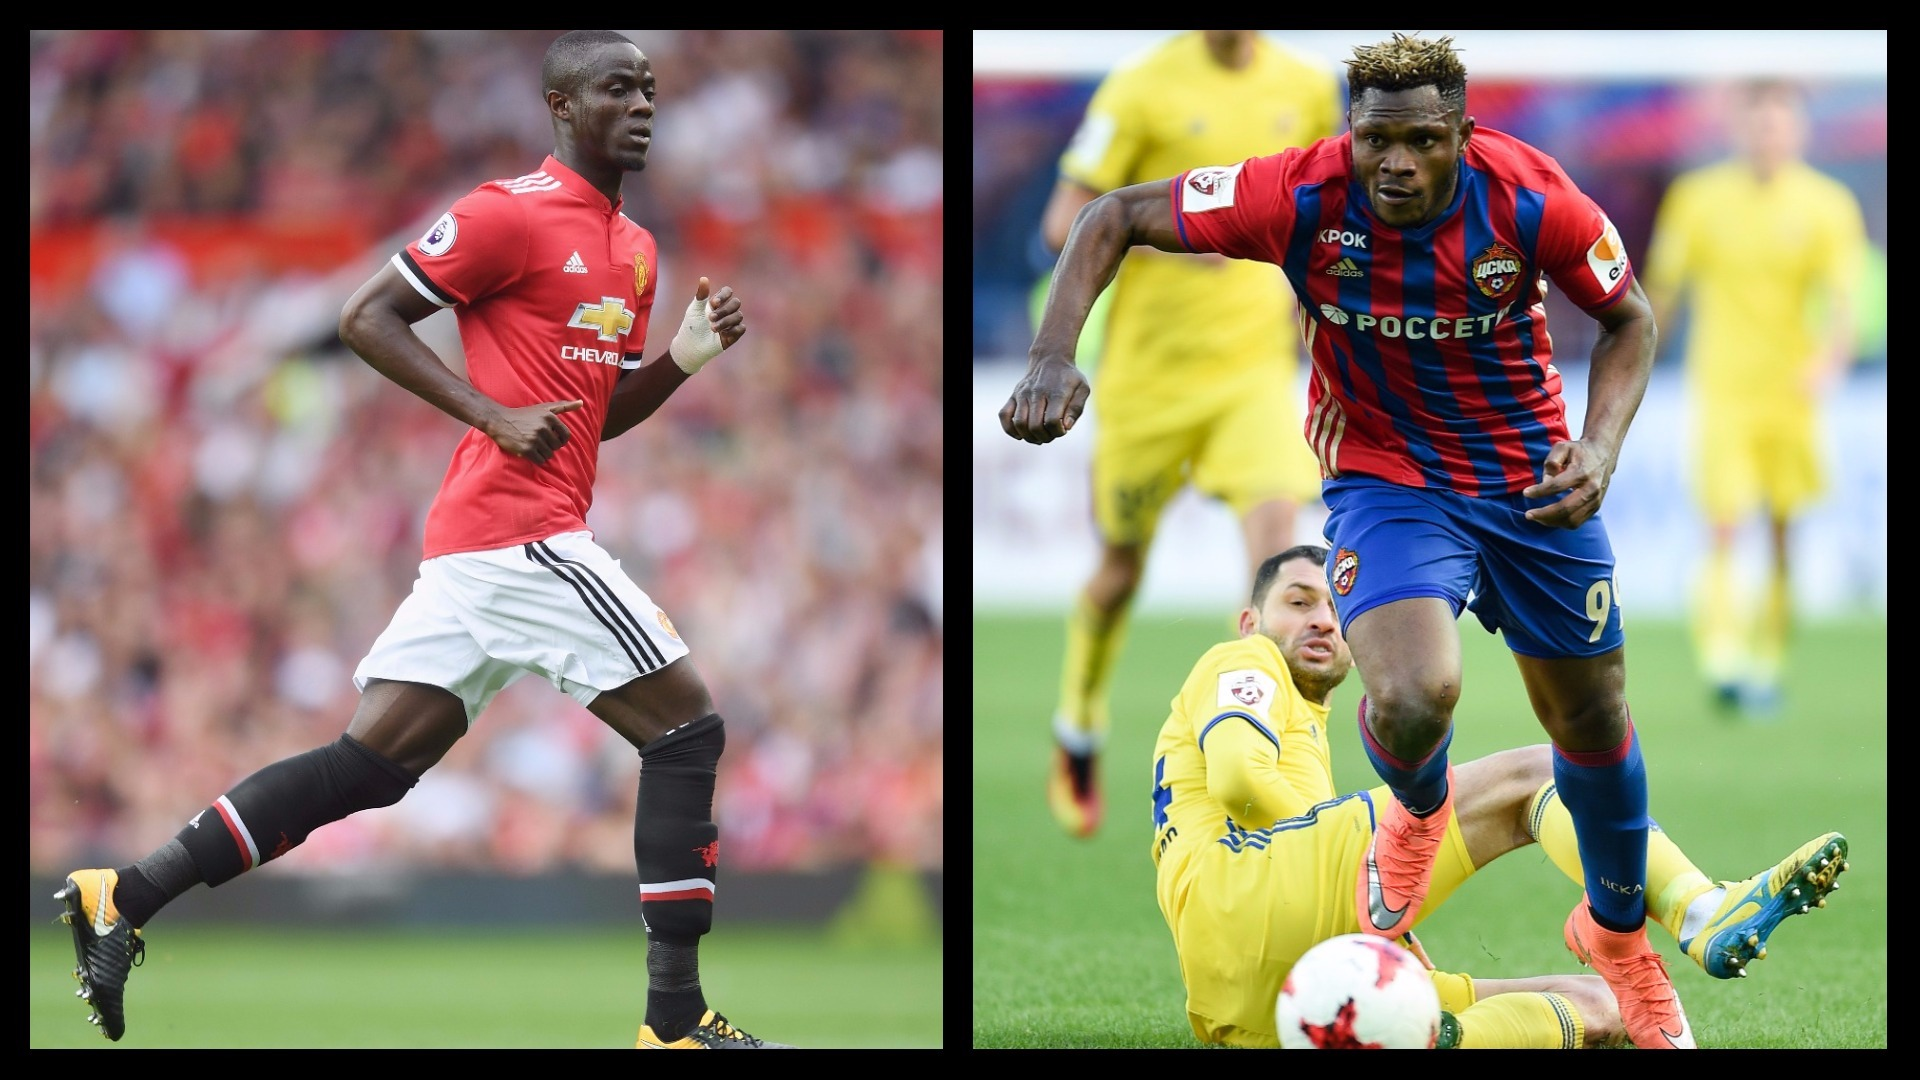 Bailly v Olanare UCL African key battles